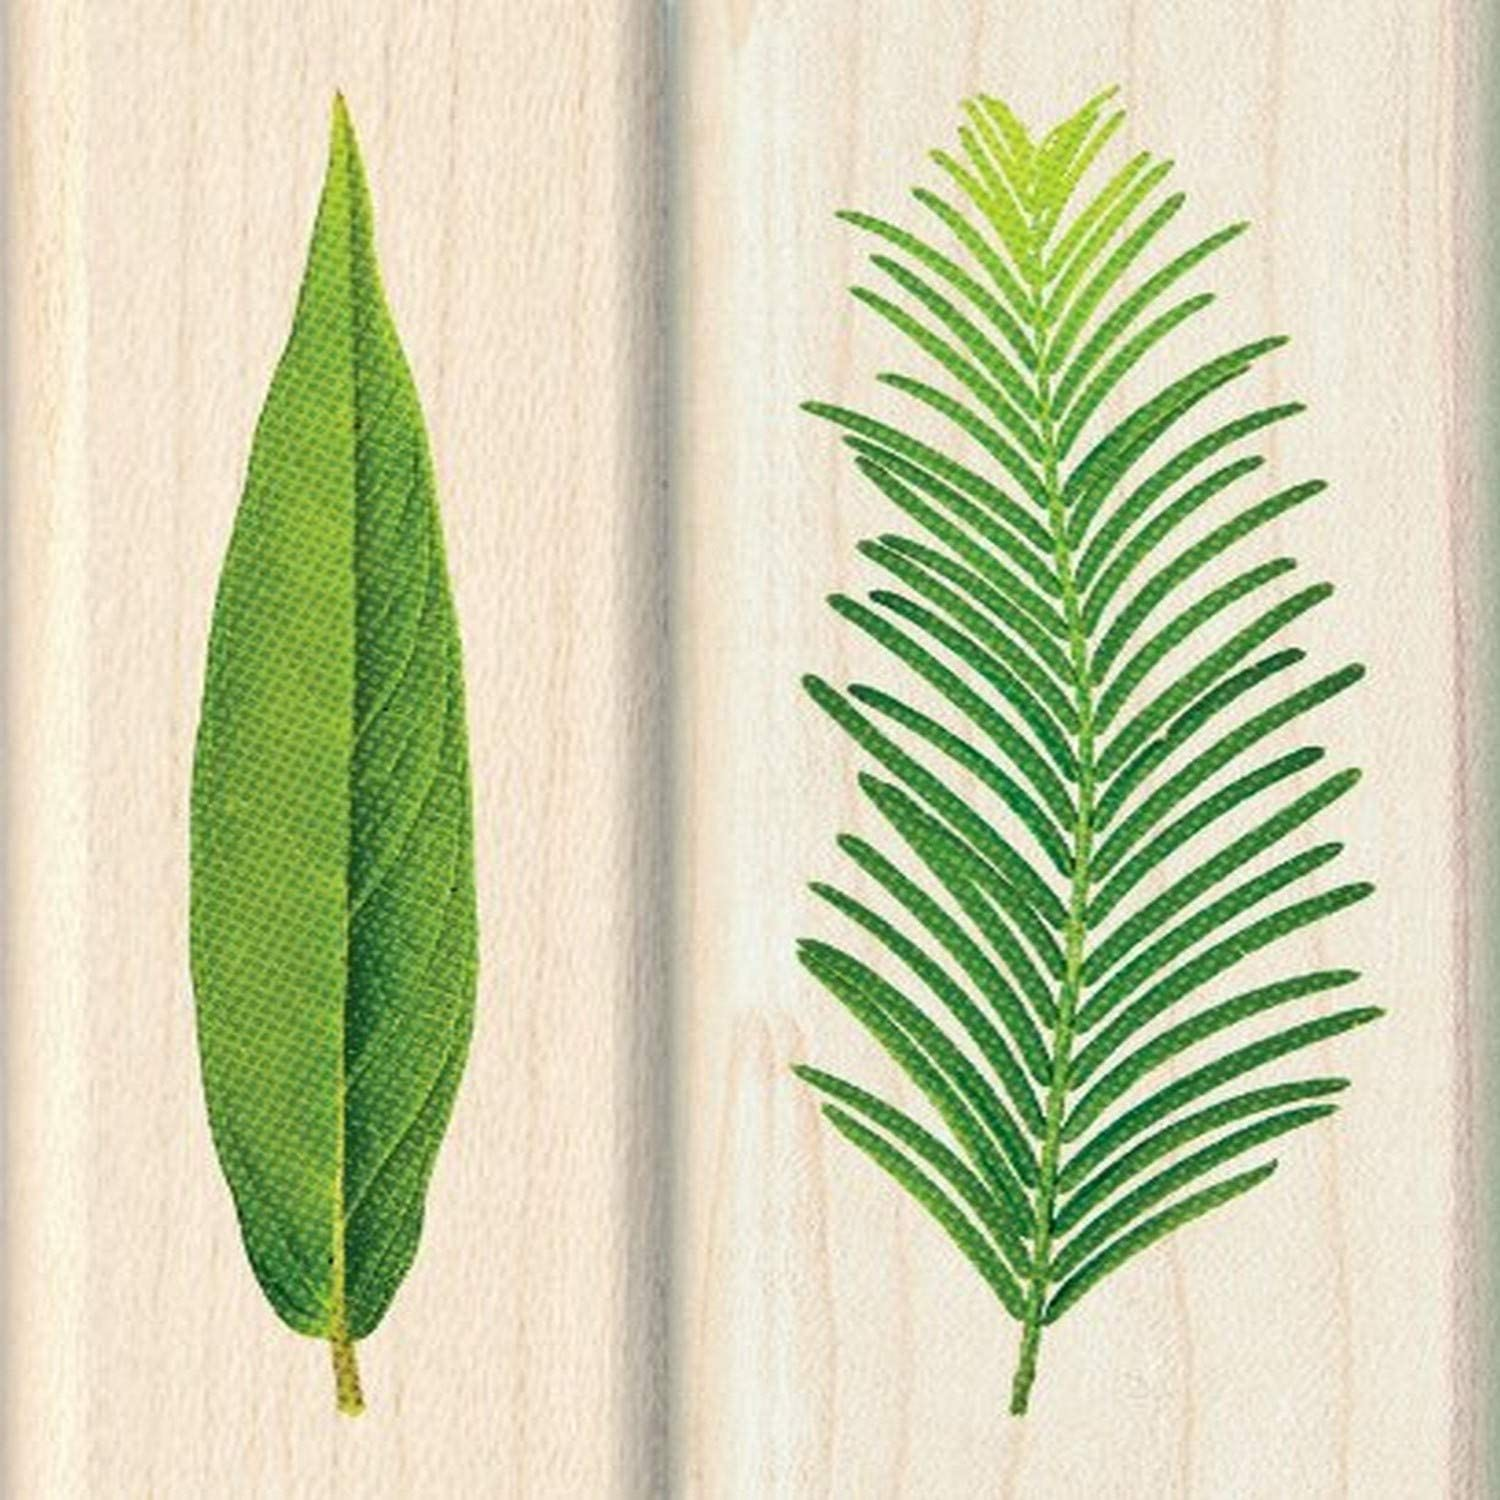 Inkadinkado Leaf Wood Stamps for Arts and Crafts, 2pc, 2.75'' L x 1'' W and 1.25'' L x 2.75'' W